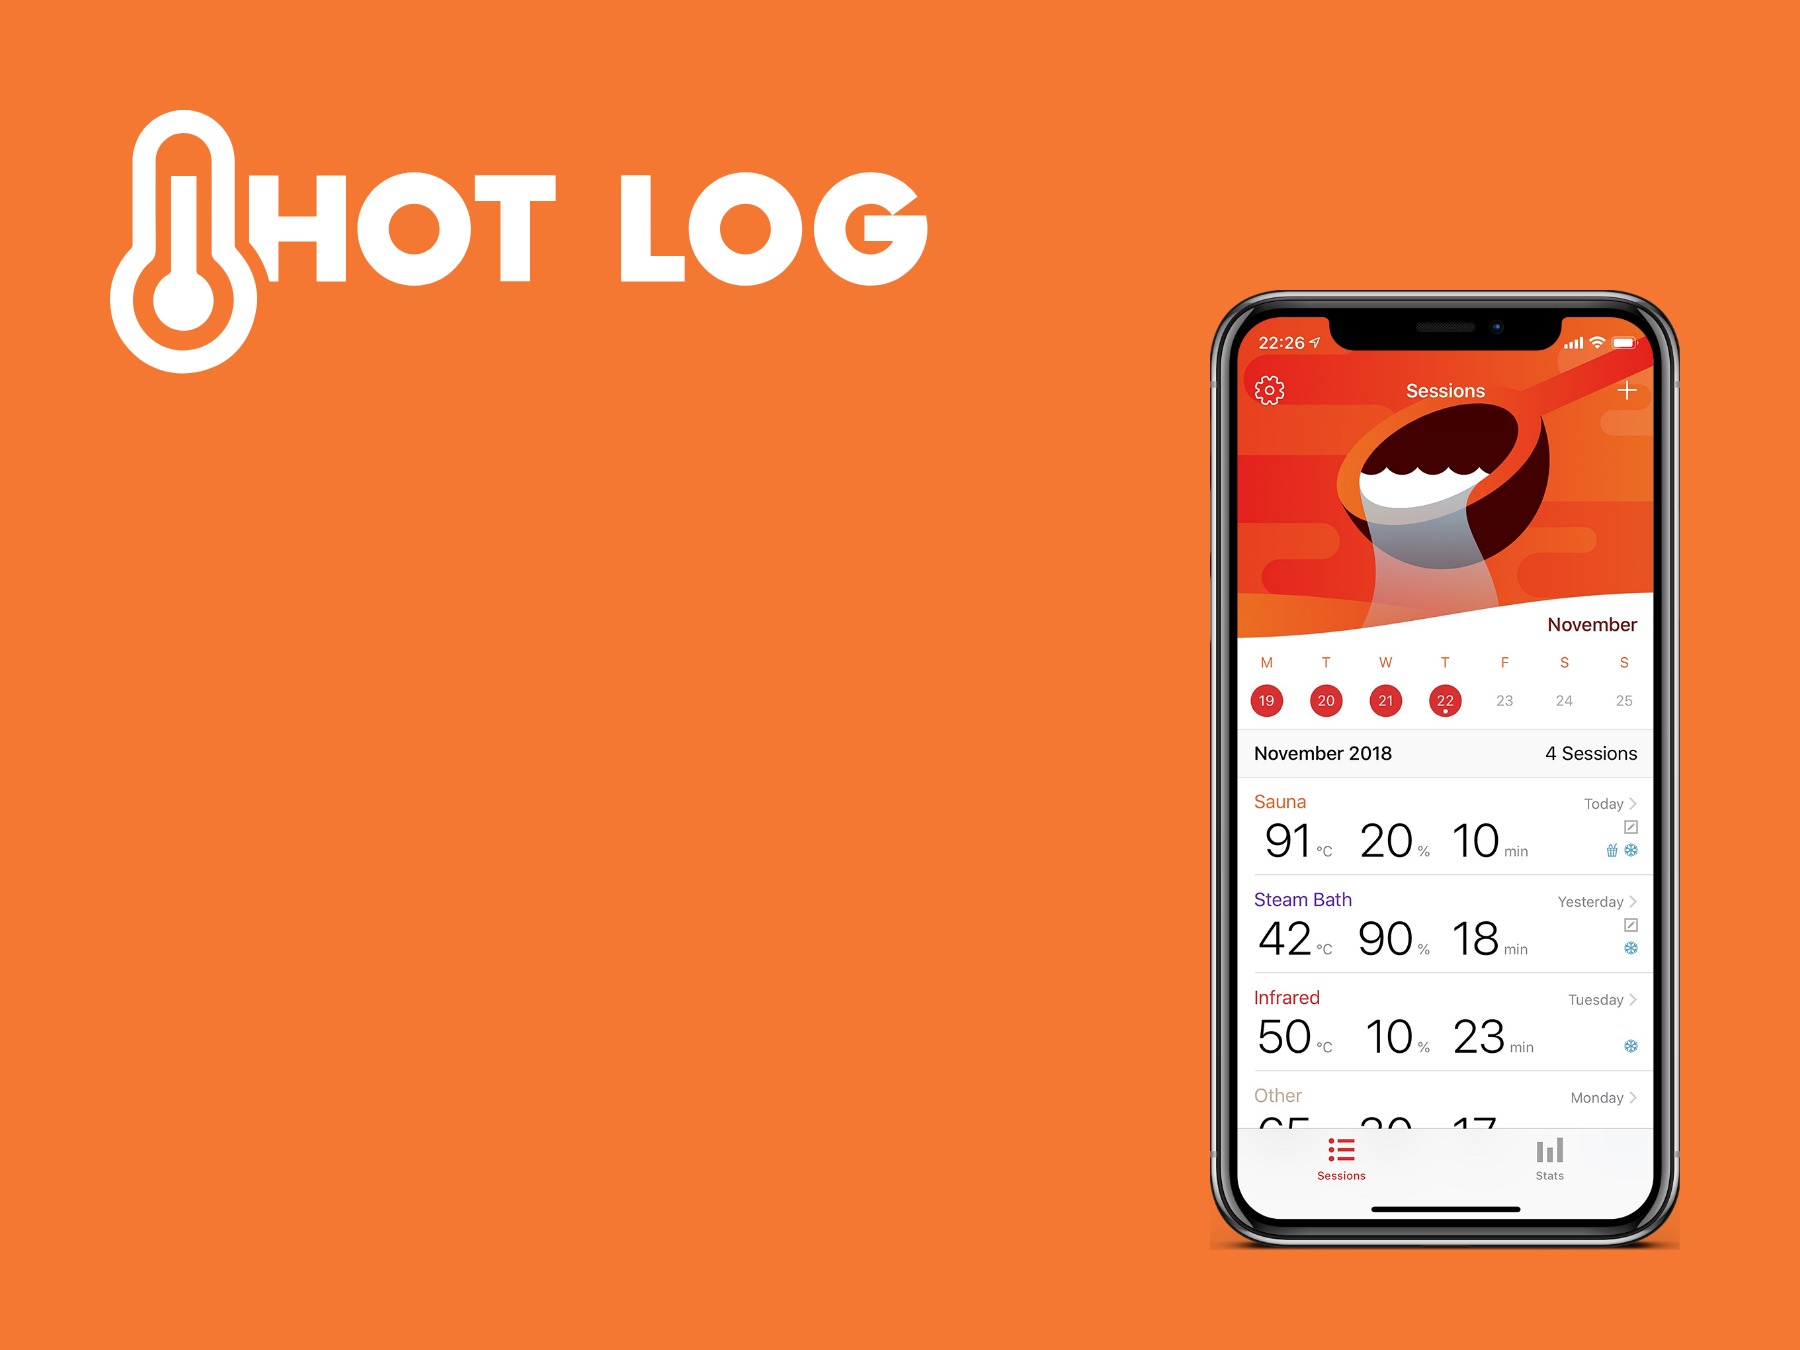 HotLog - Sauna Session Tracking App